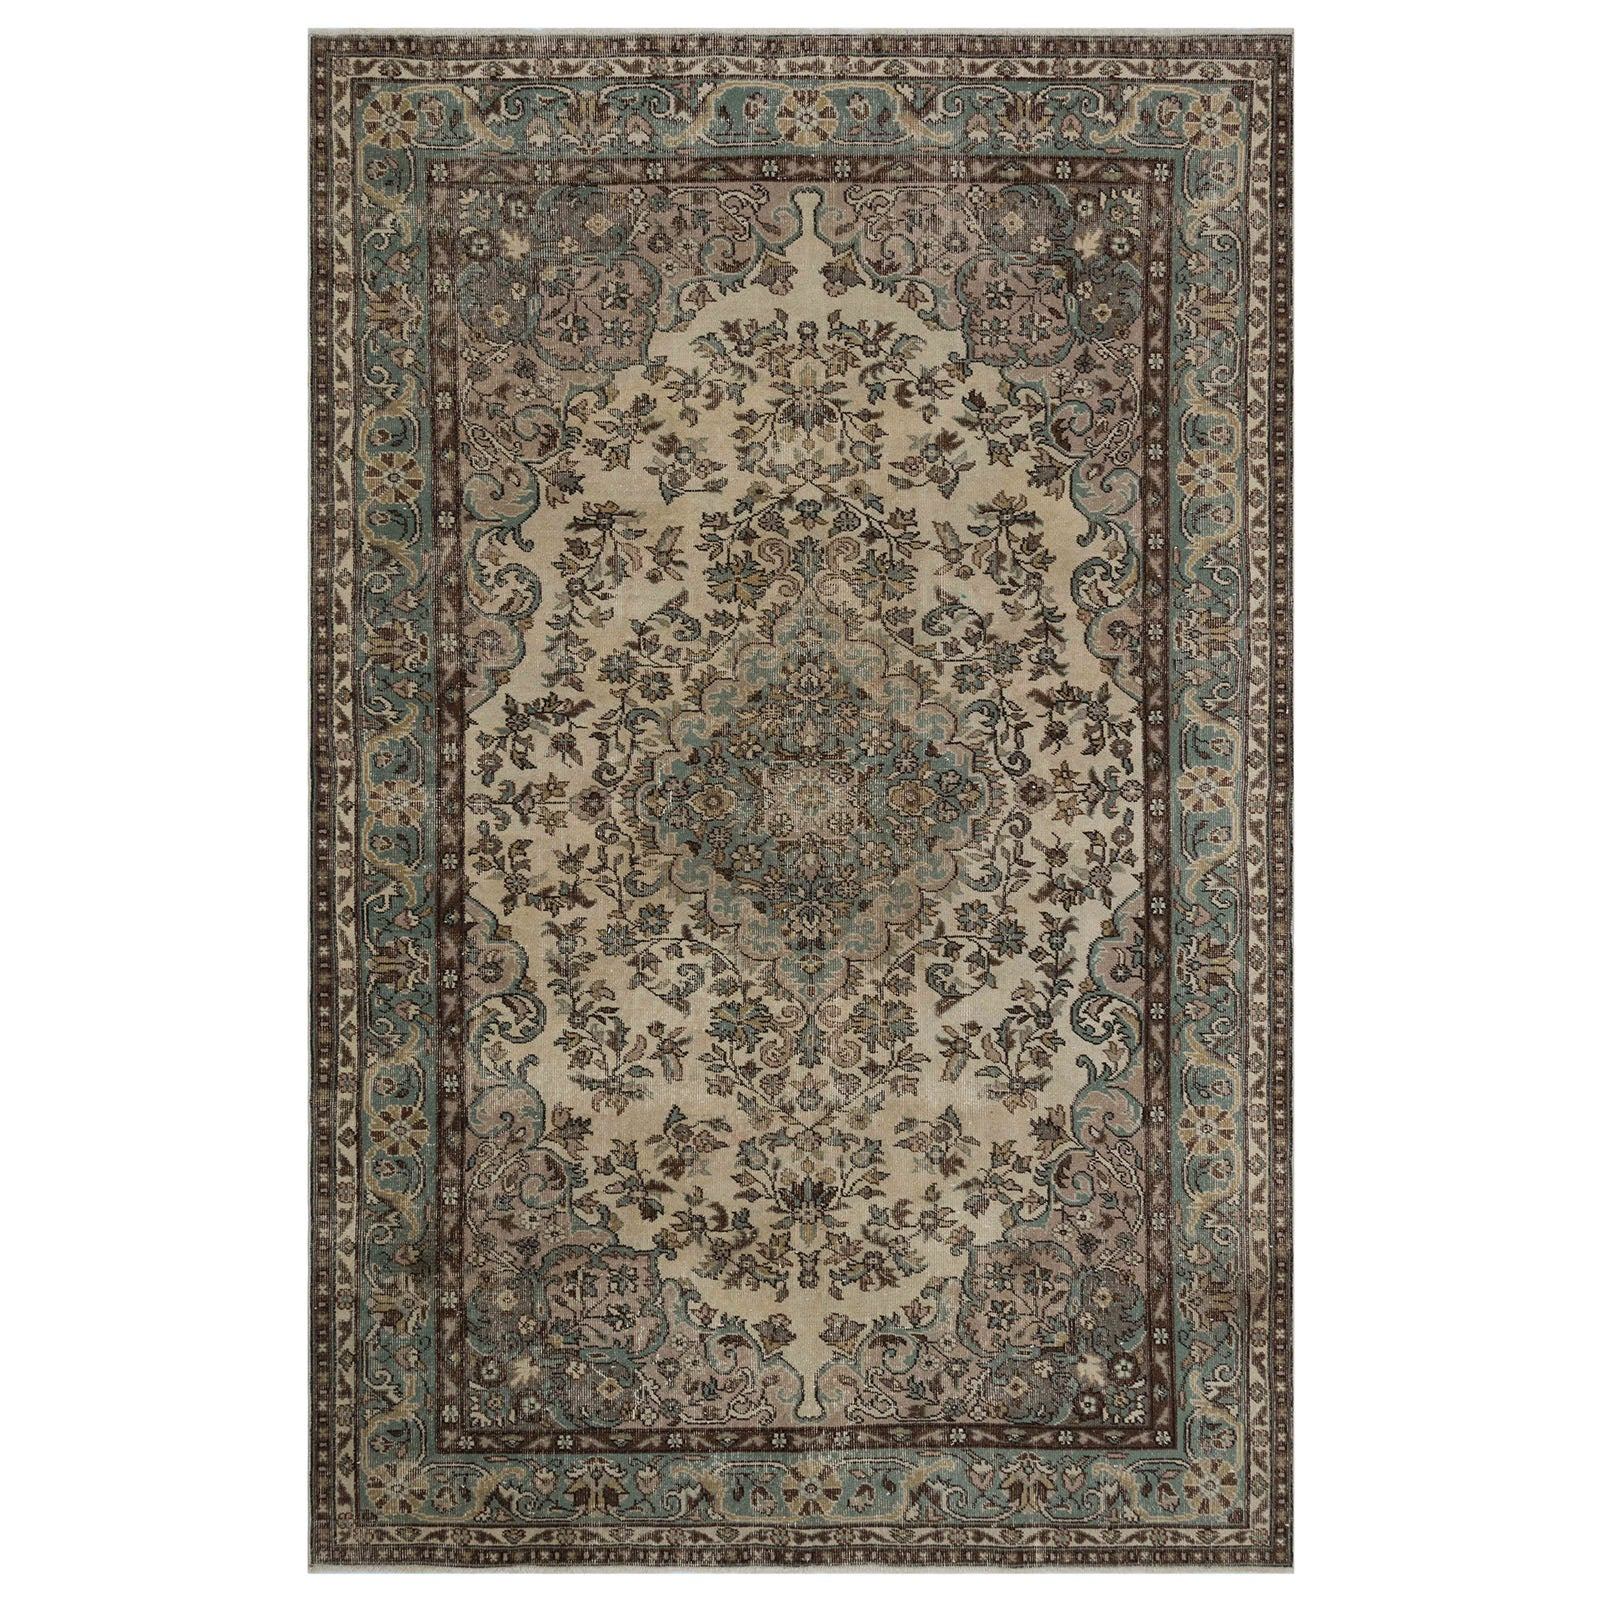 Hali 200X314 CM Bursa Handmade over dyed rug 1800